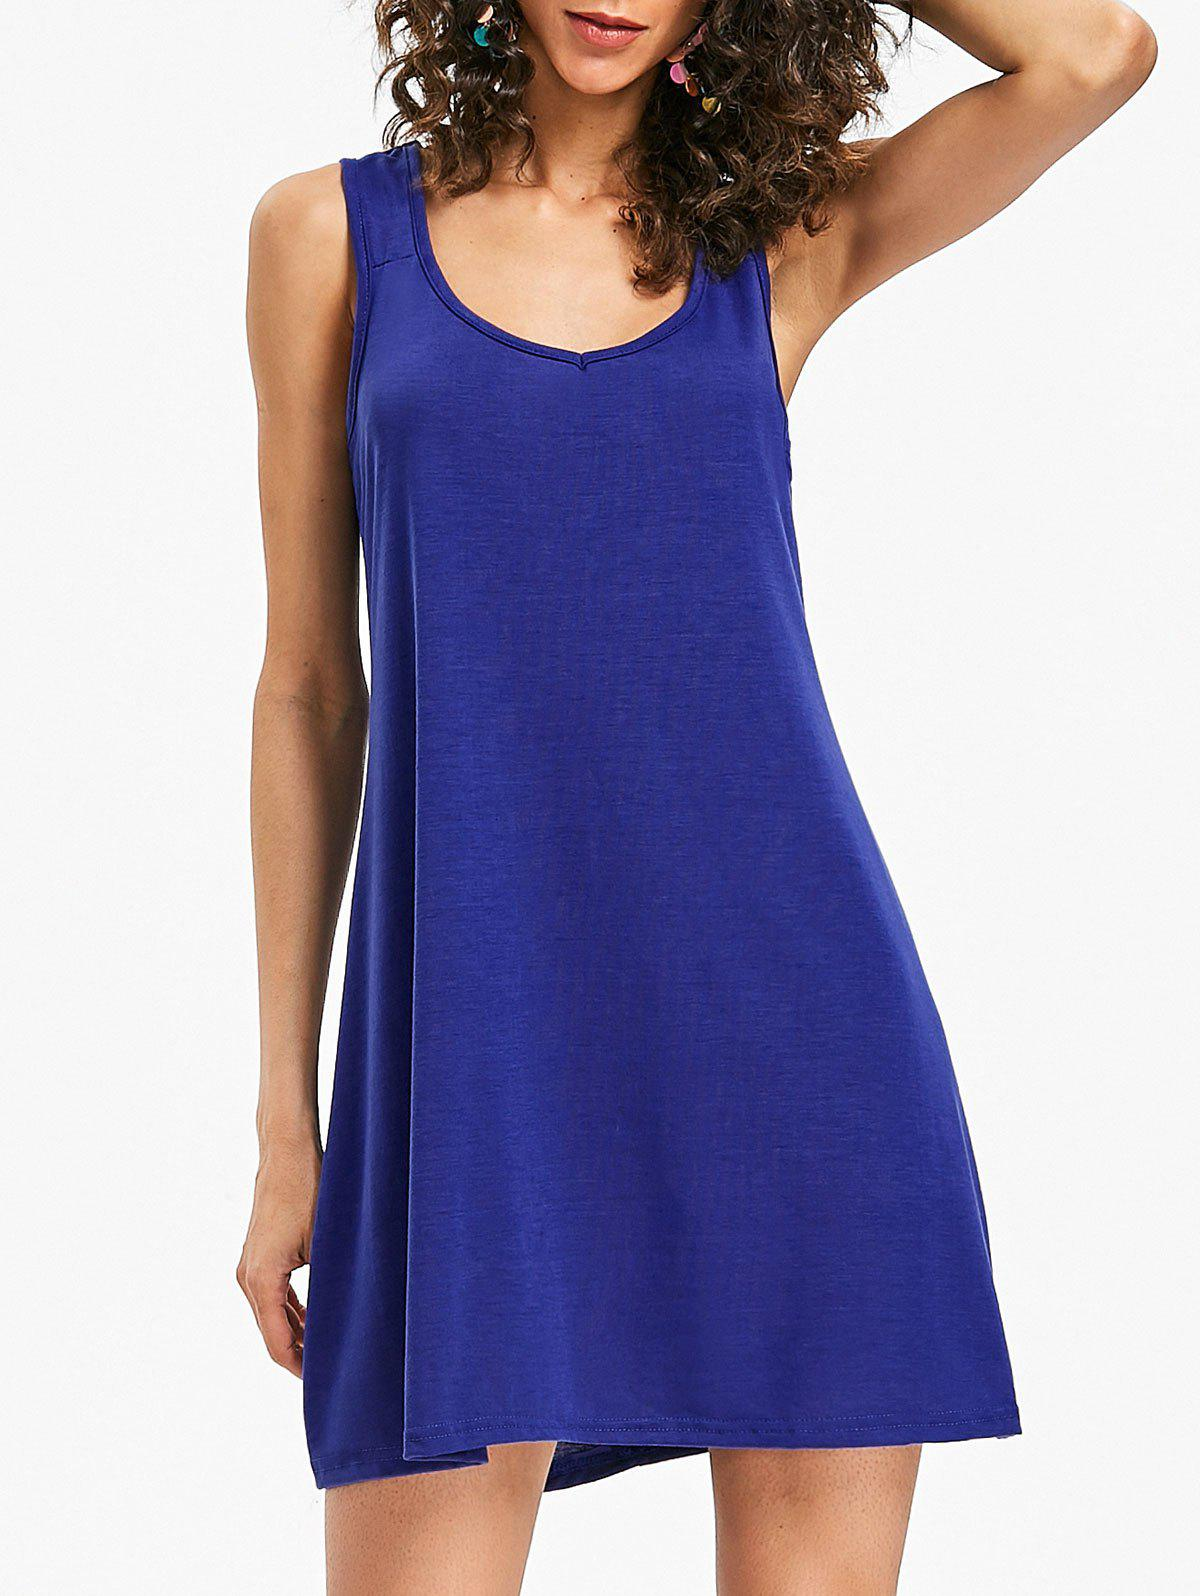 Mini Sleeveless Shift Dress - SAPPHIRE BLUE XL